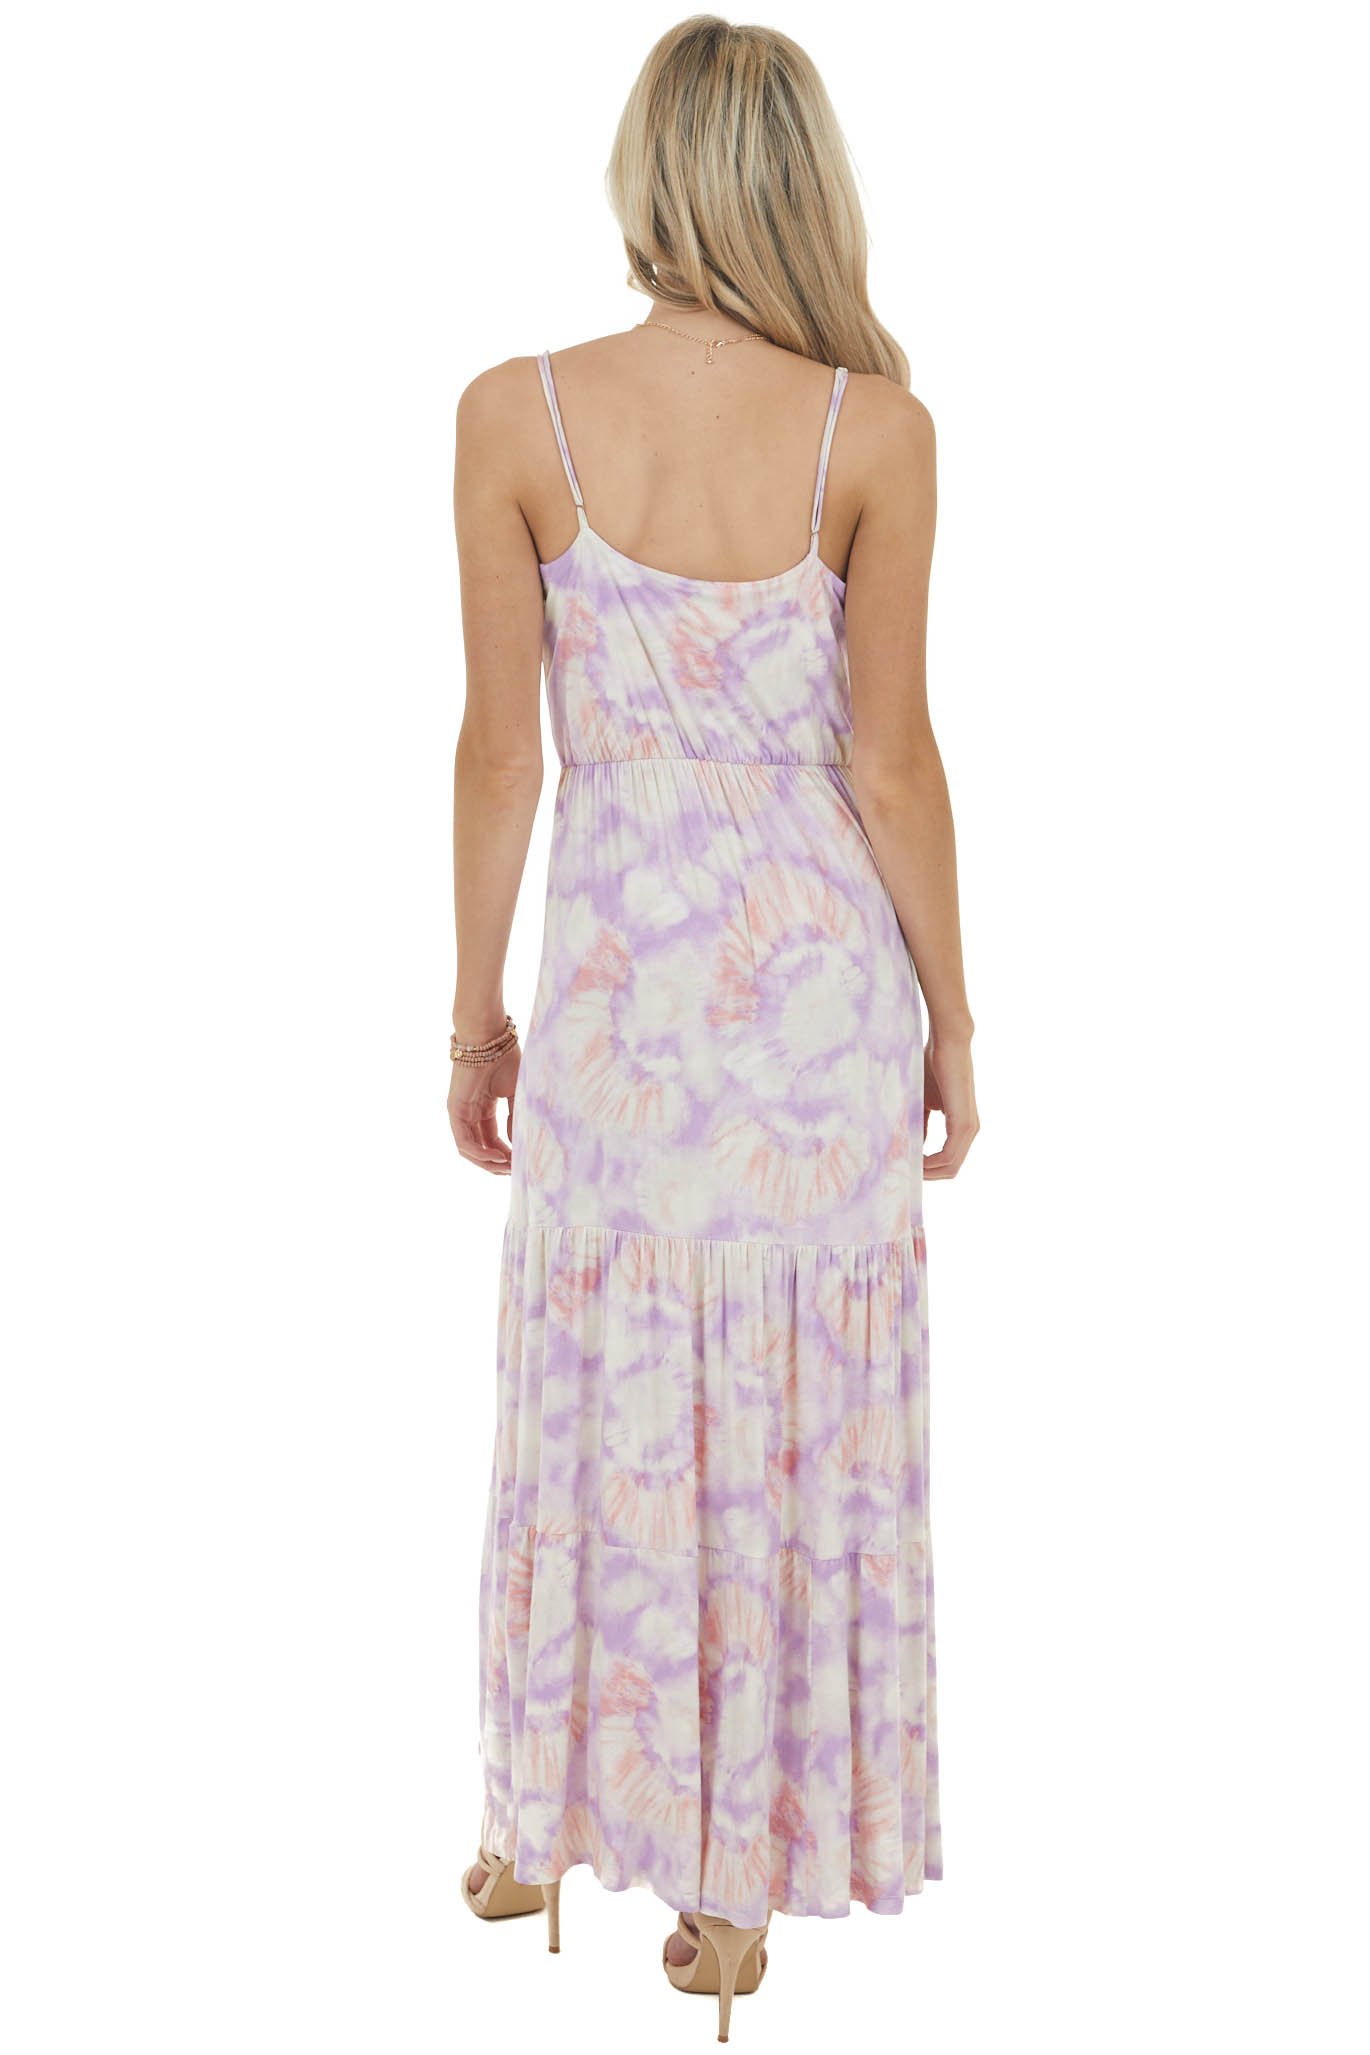 Iris Tie Dye Sleeveless Blouson Maxi Dress with Cinch Waist